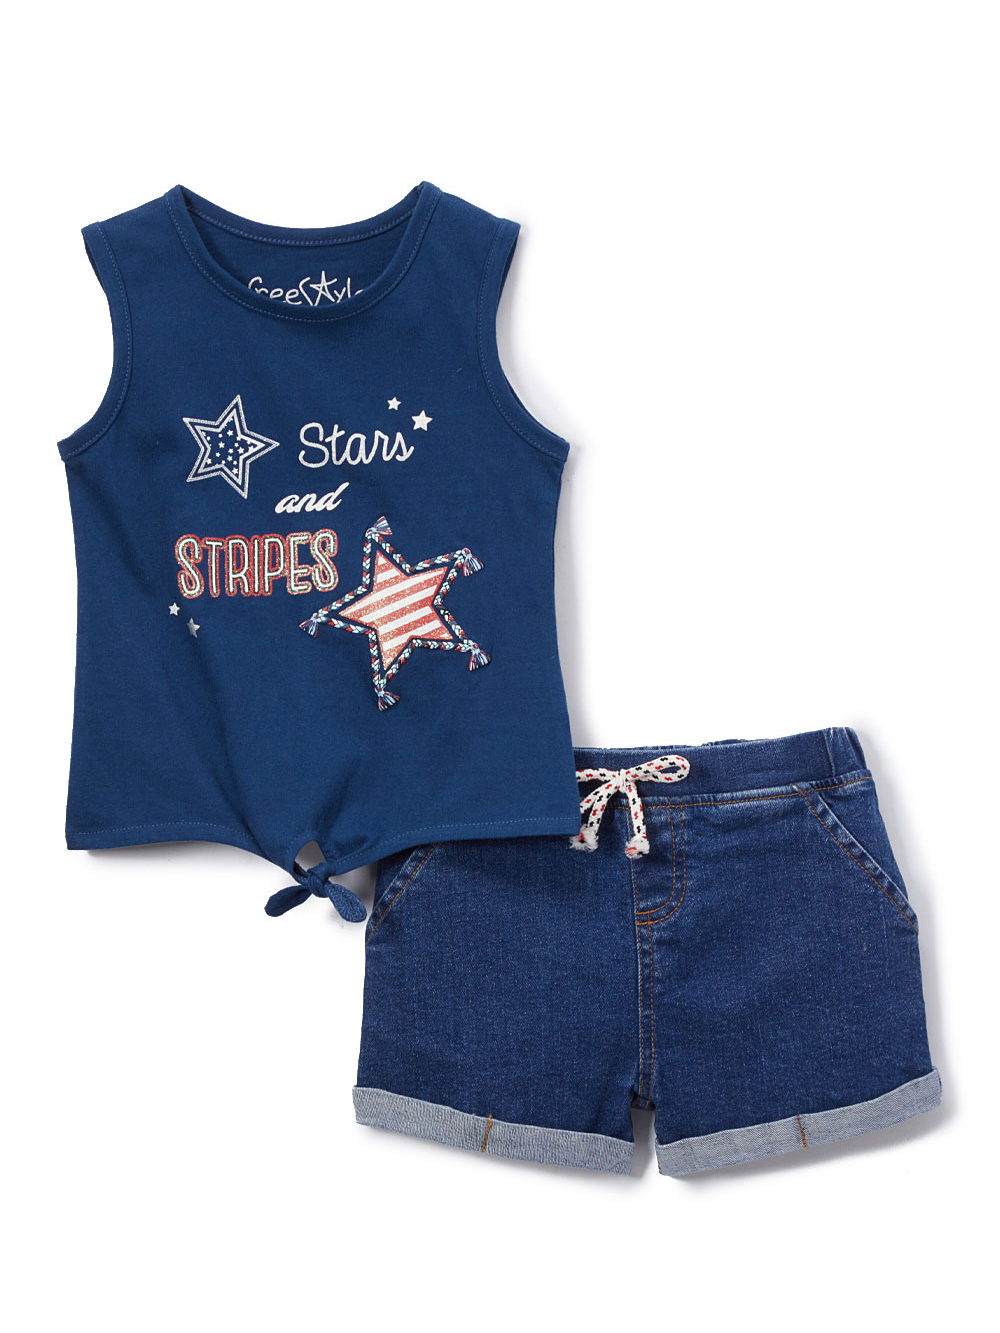 Graphic Tank Top and Denim Shorts, 2pc Outfit Set (Toddler Girls)